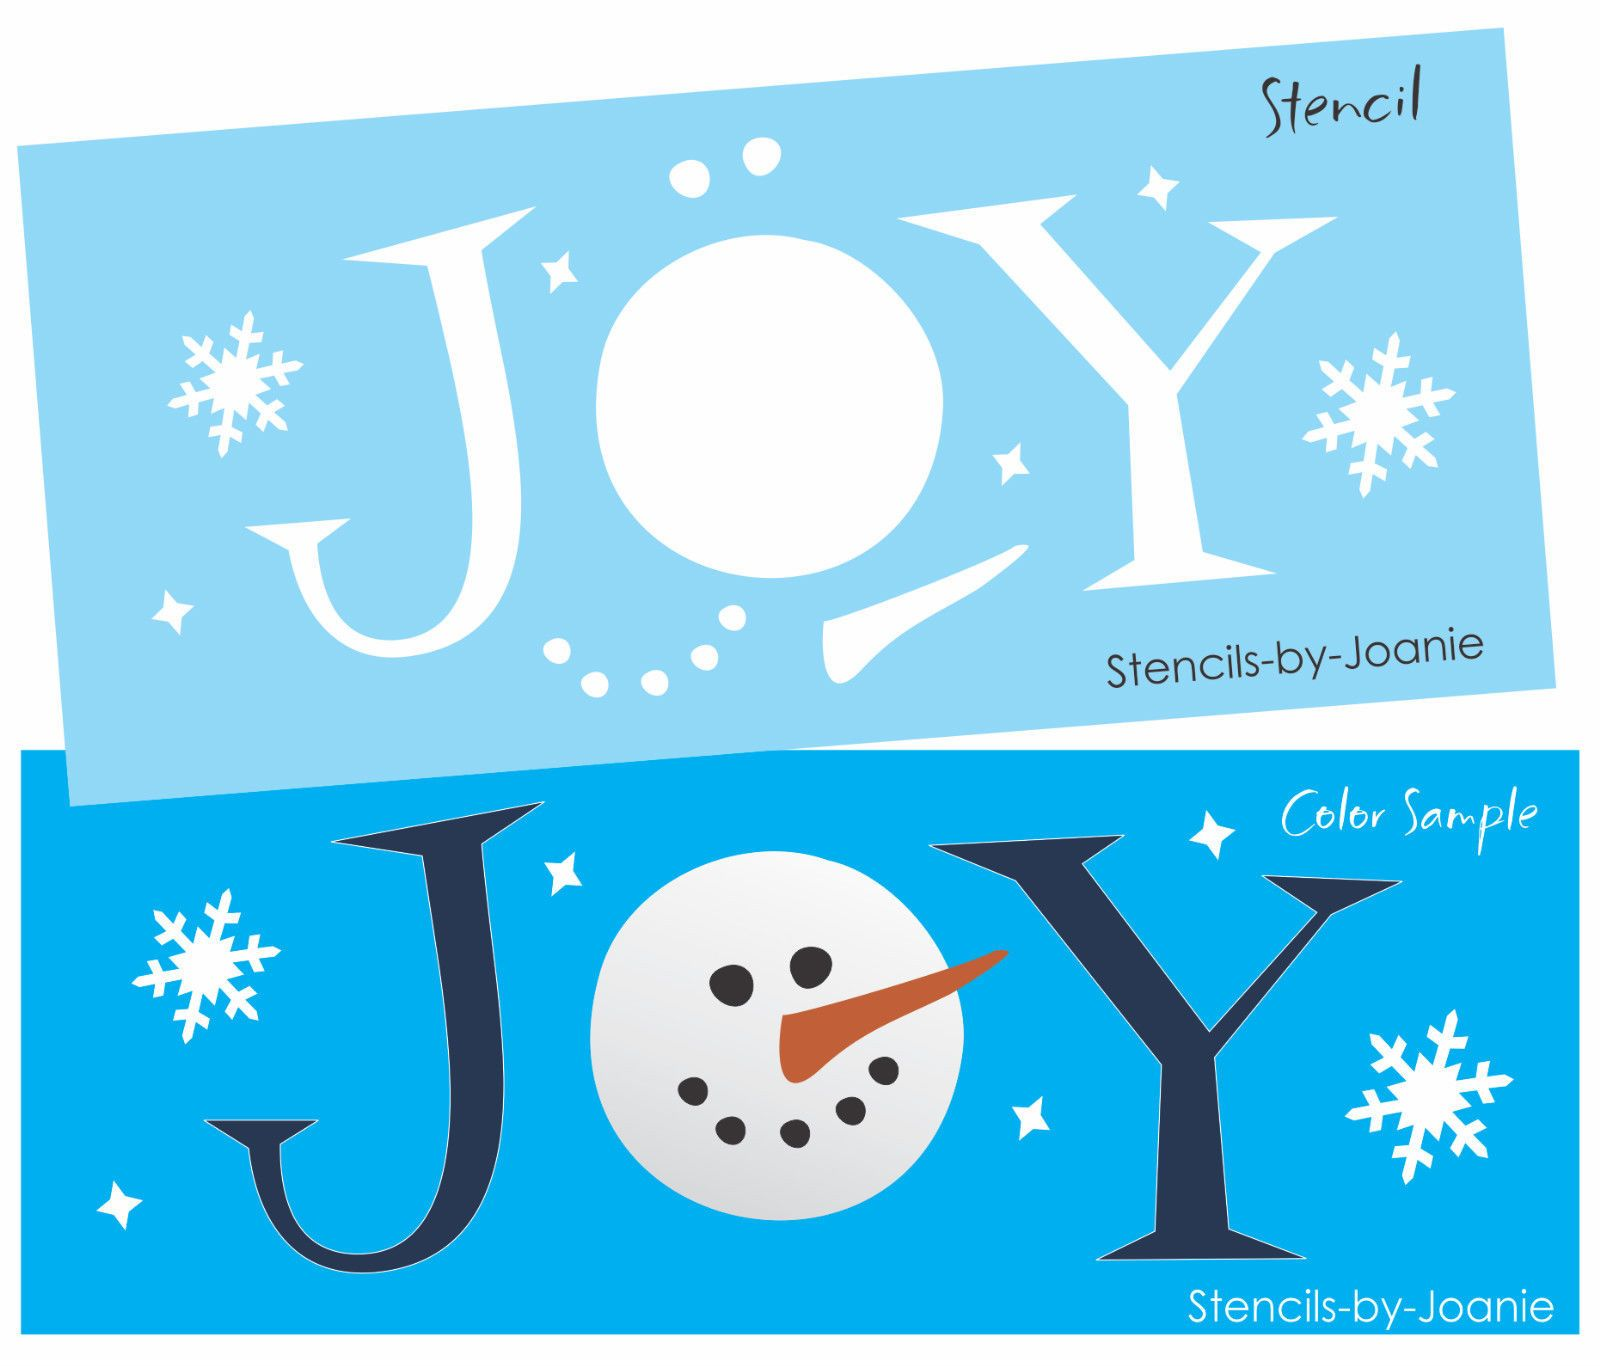 Details about Stencil Joy Frosty Snowman Face Carrot Nose